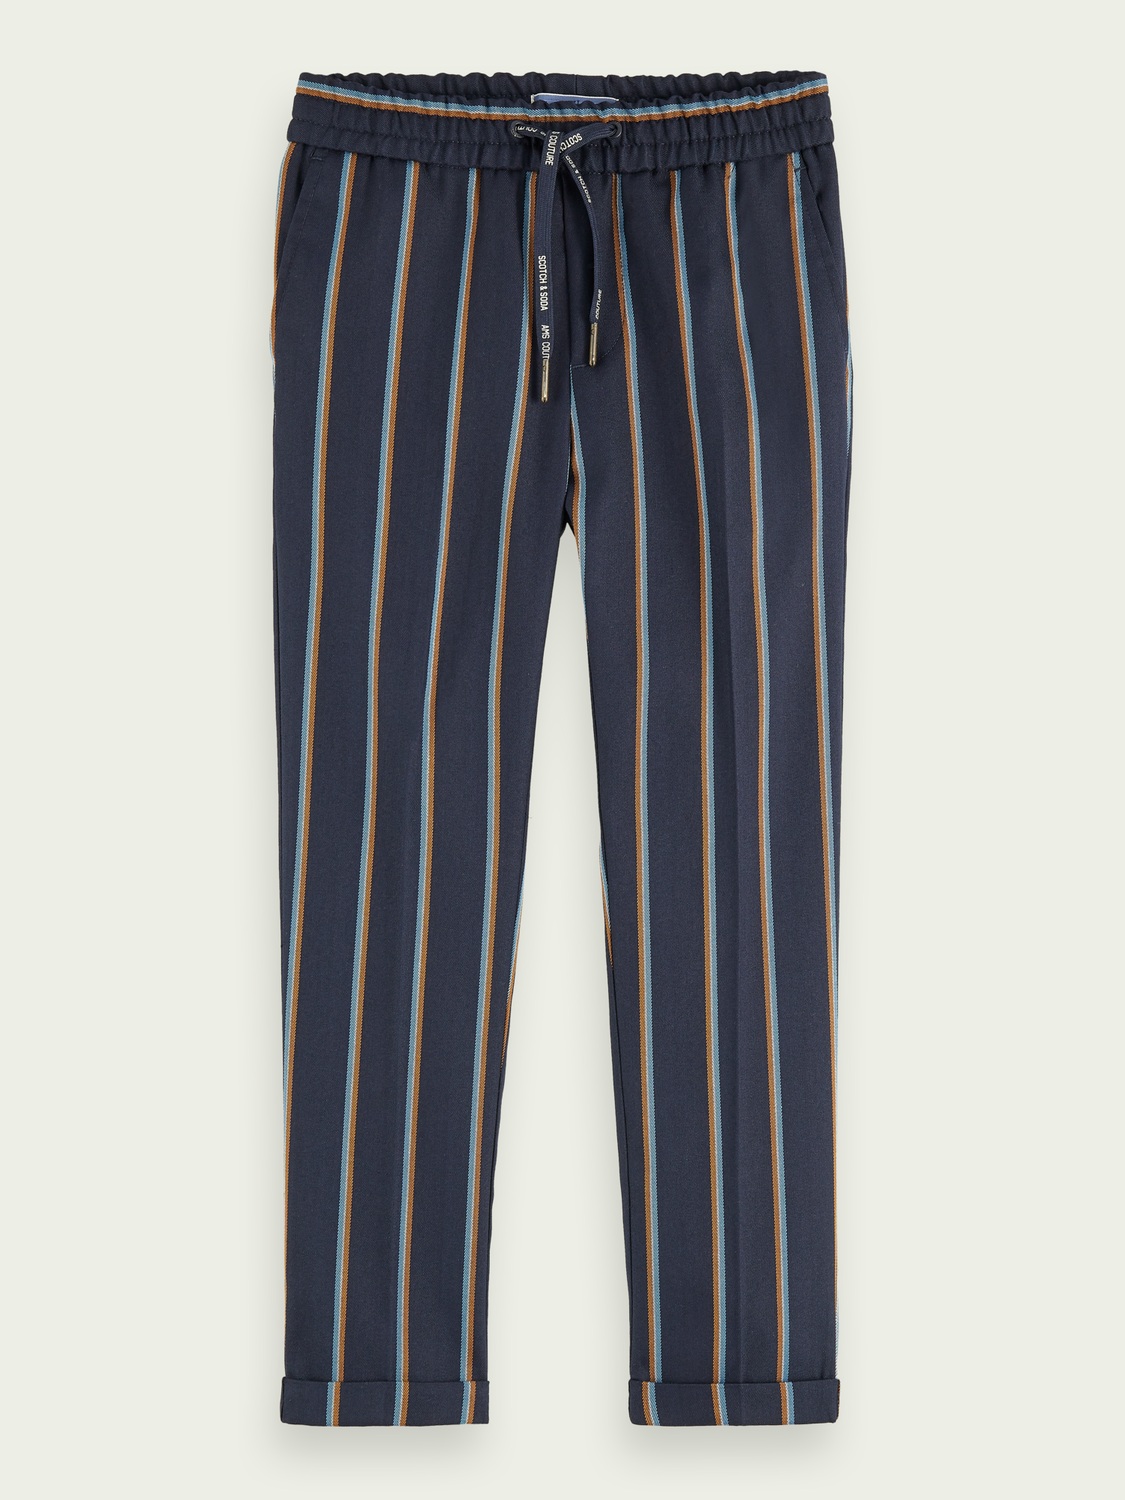 Boys Striped relaxed pants   Slim fit